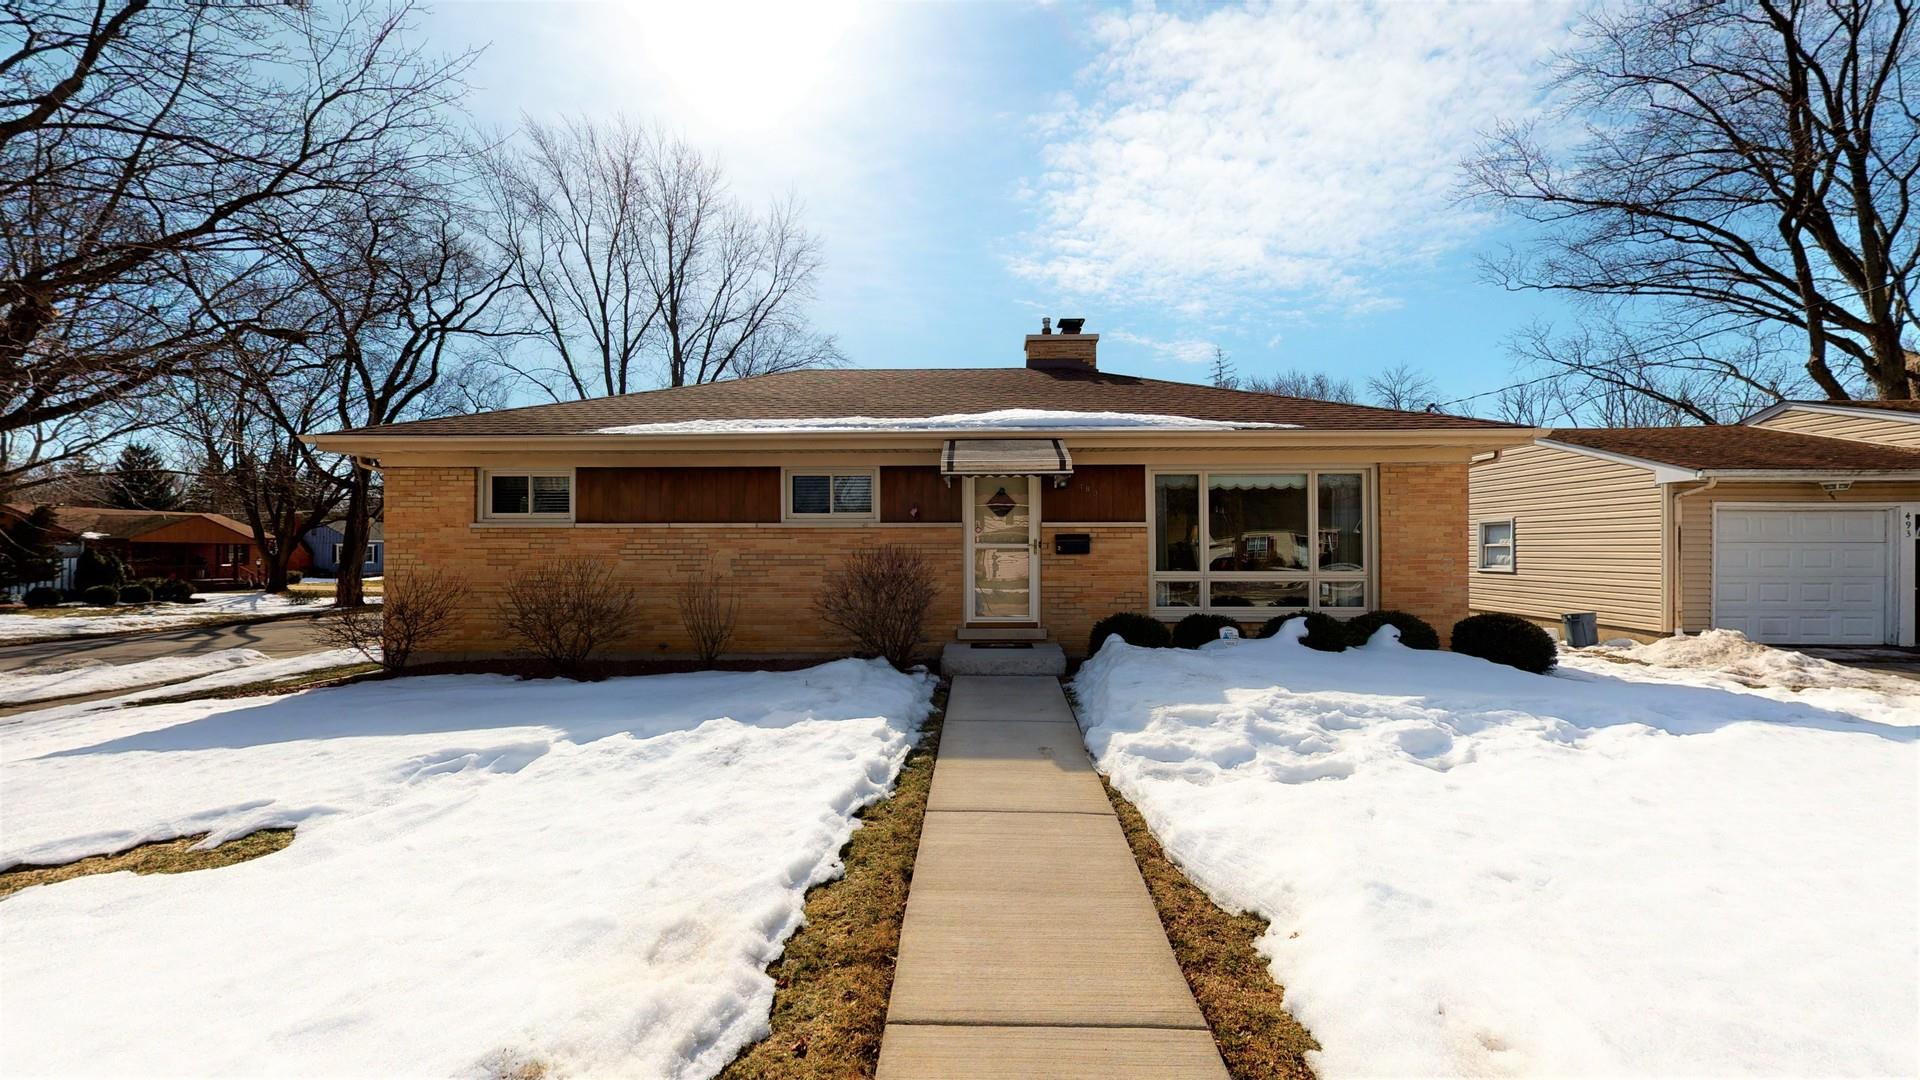 489 W Crystal Lake Avenue, Crystal Lake, IL 60014 - #: 11013233